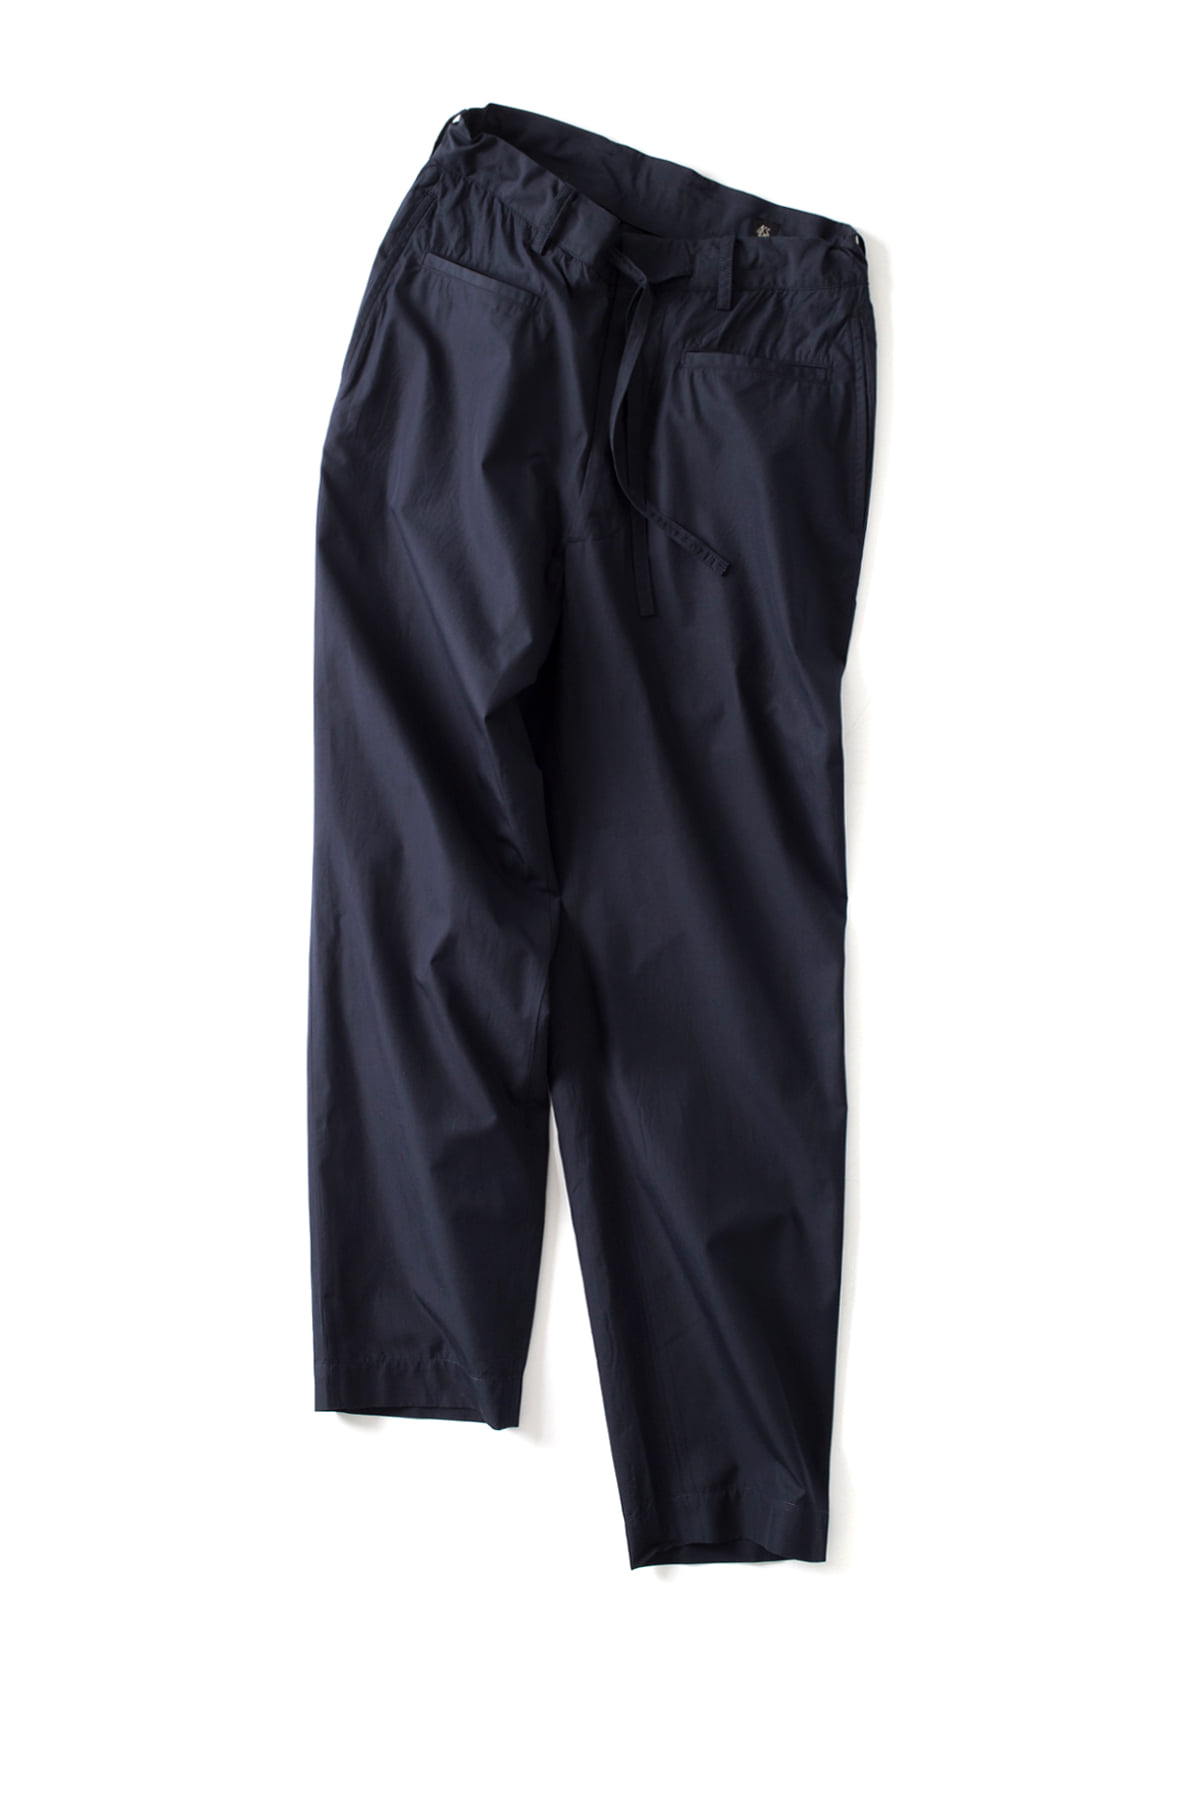 Kaptain Sunshine : Traveller Trousers (Navy)